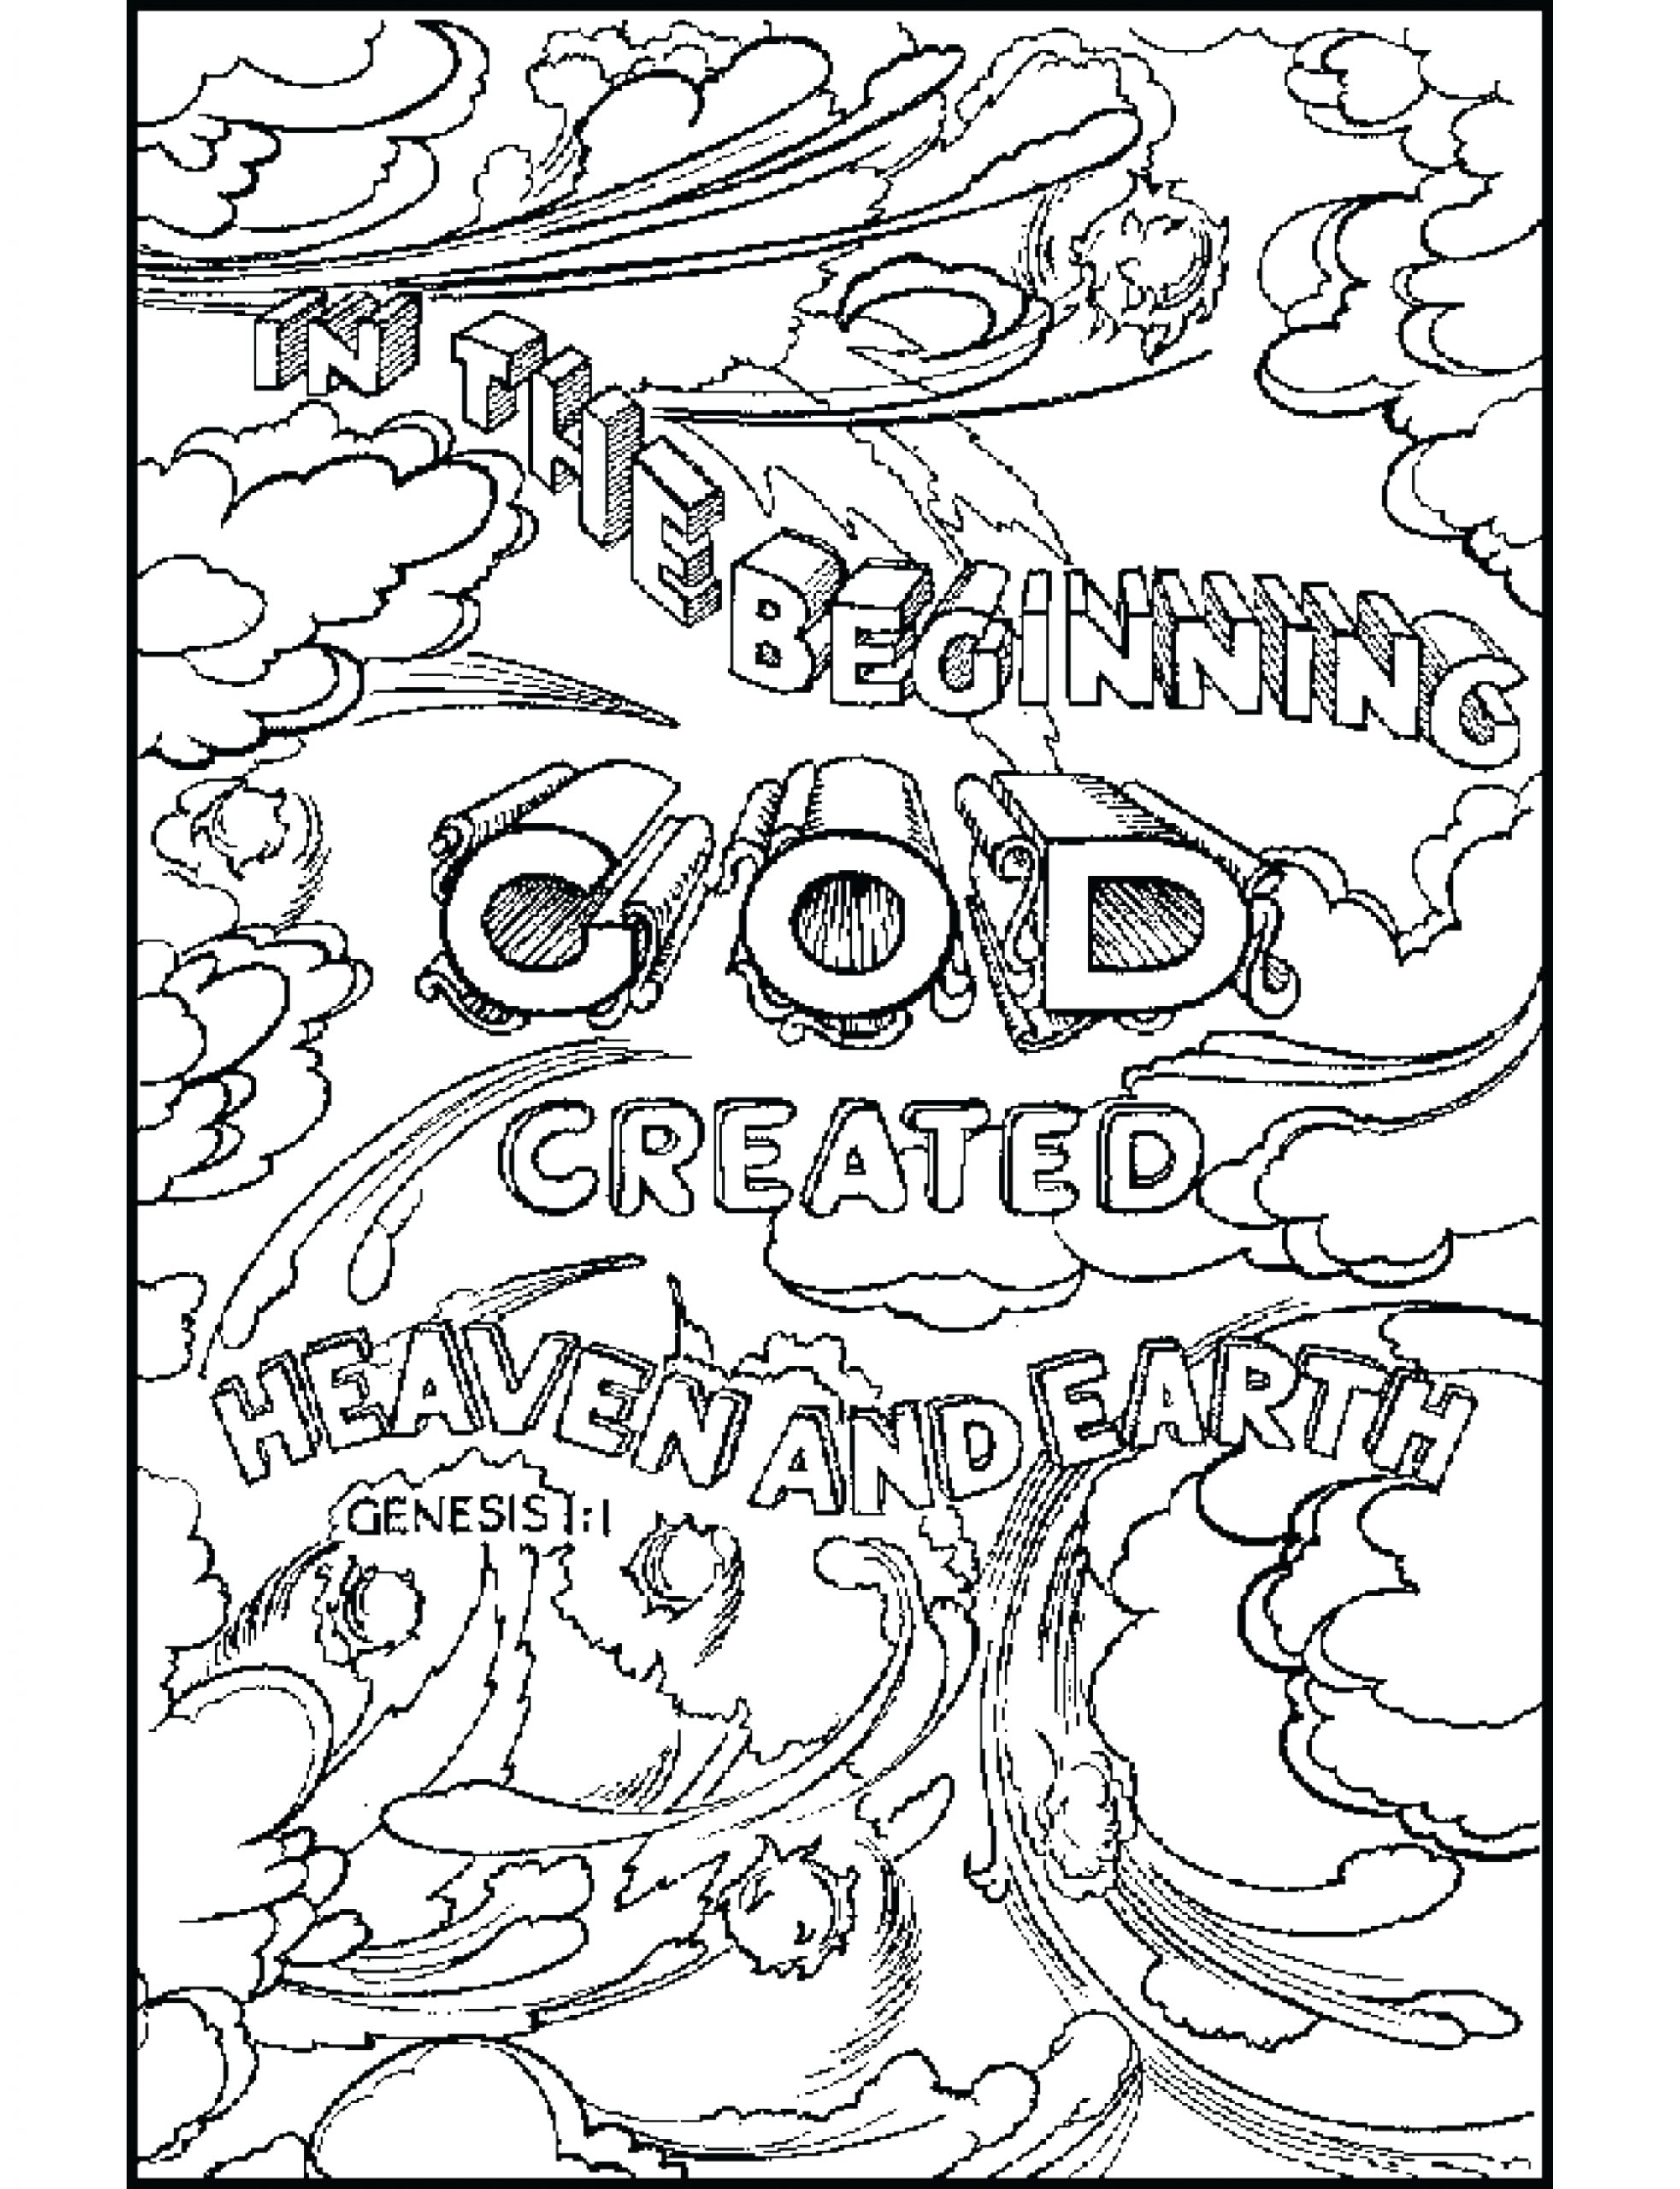 Bible Story Coloring Pages for Kids Printable Gideon Bible Coloring Pages at Getcolorings